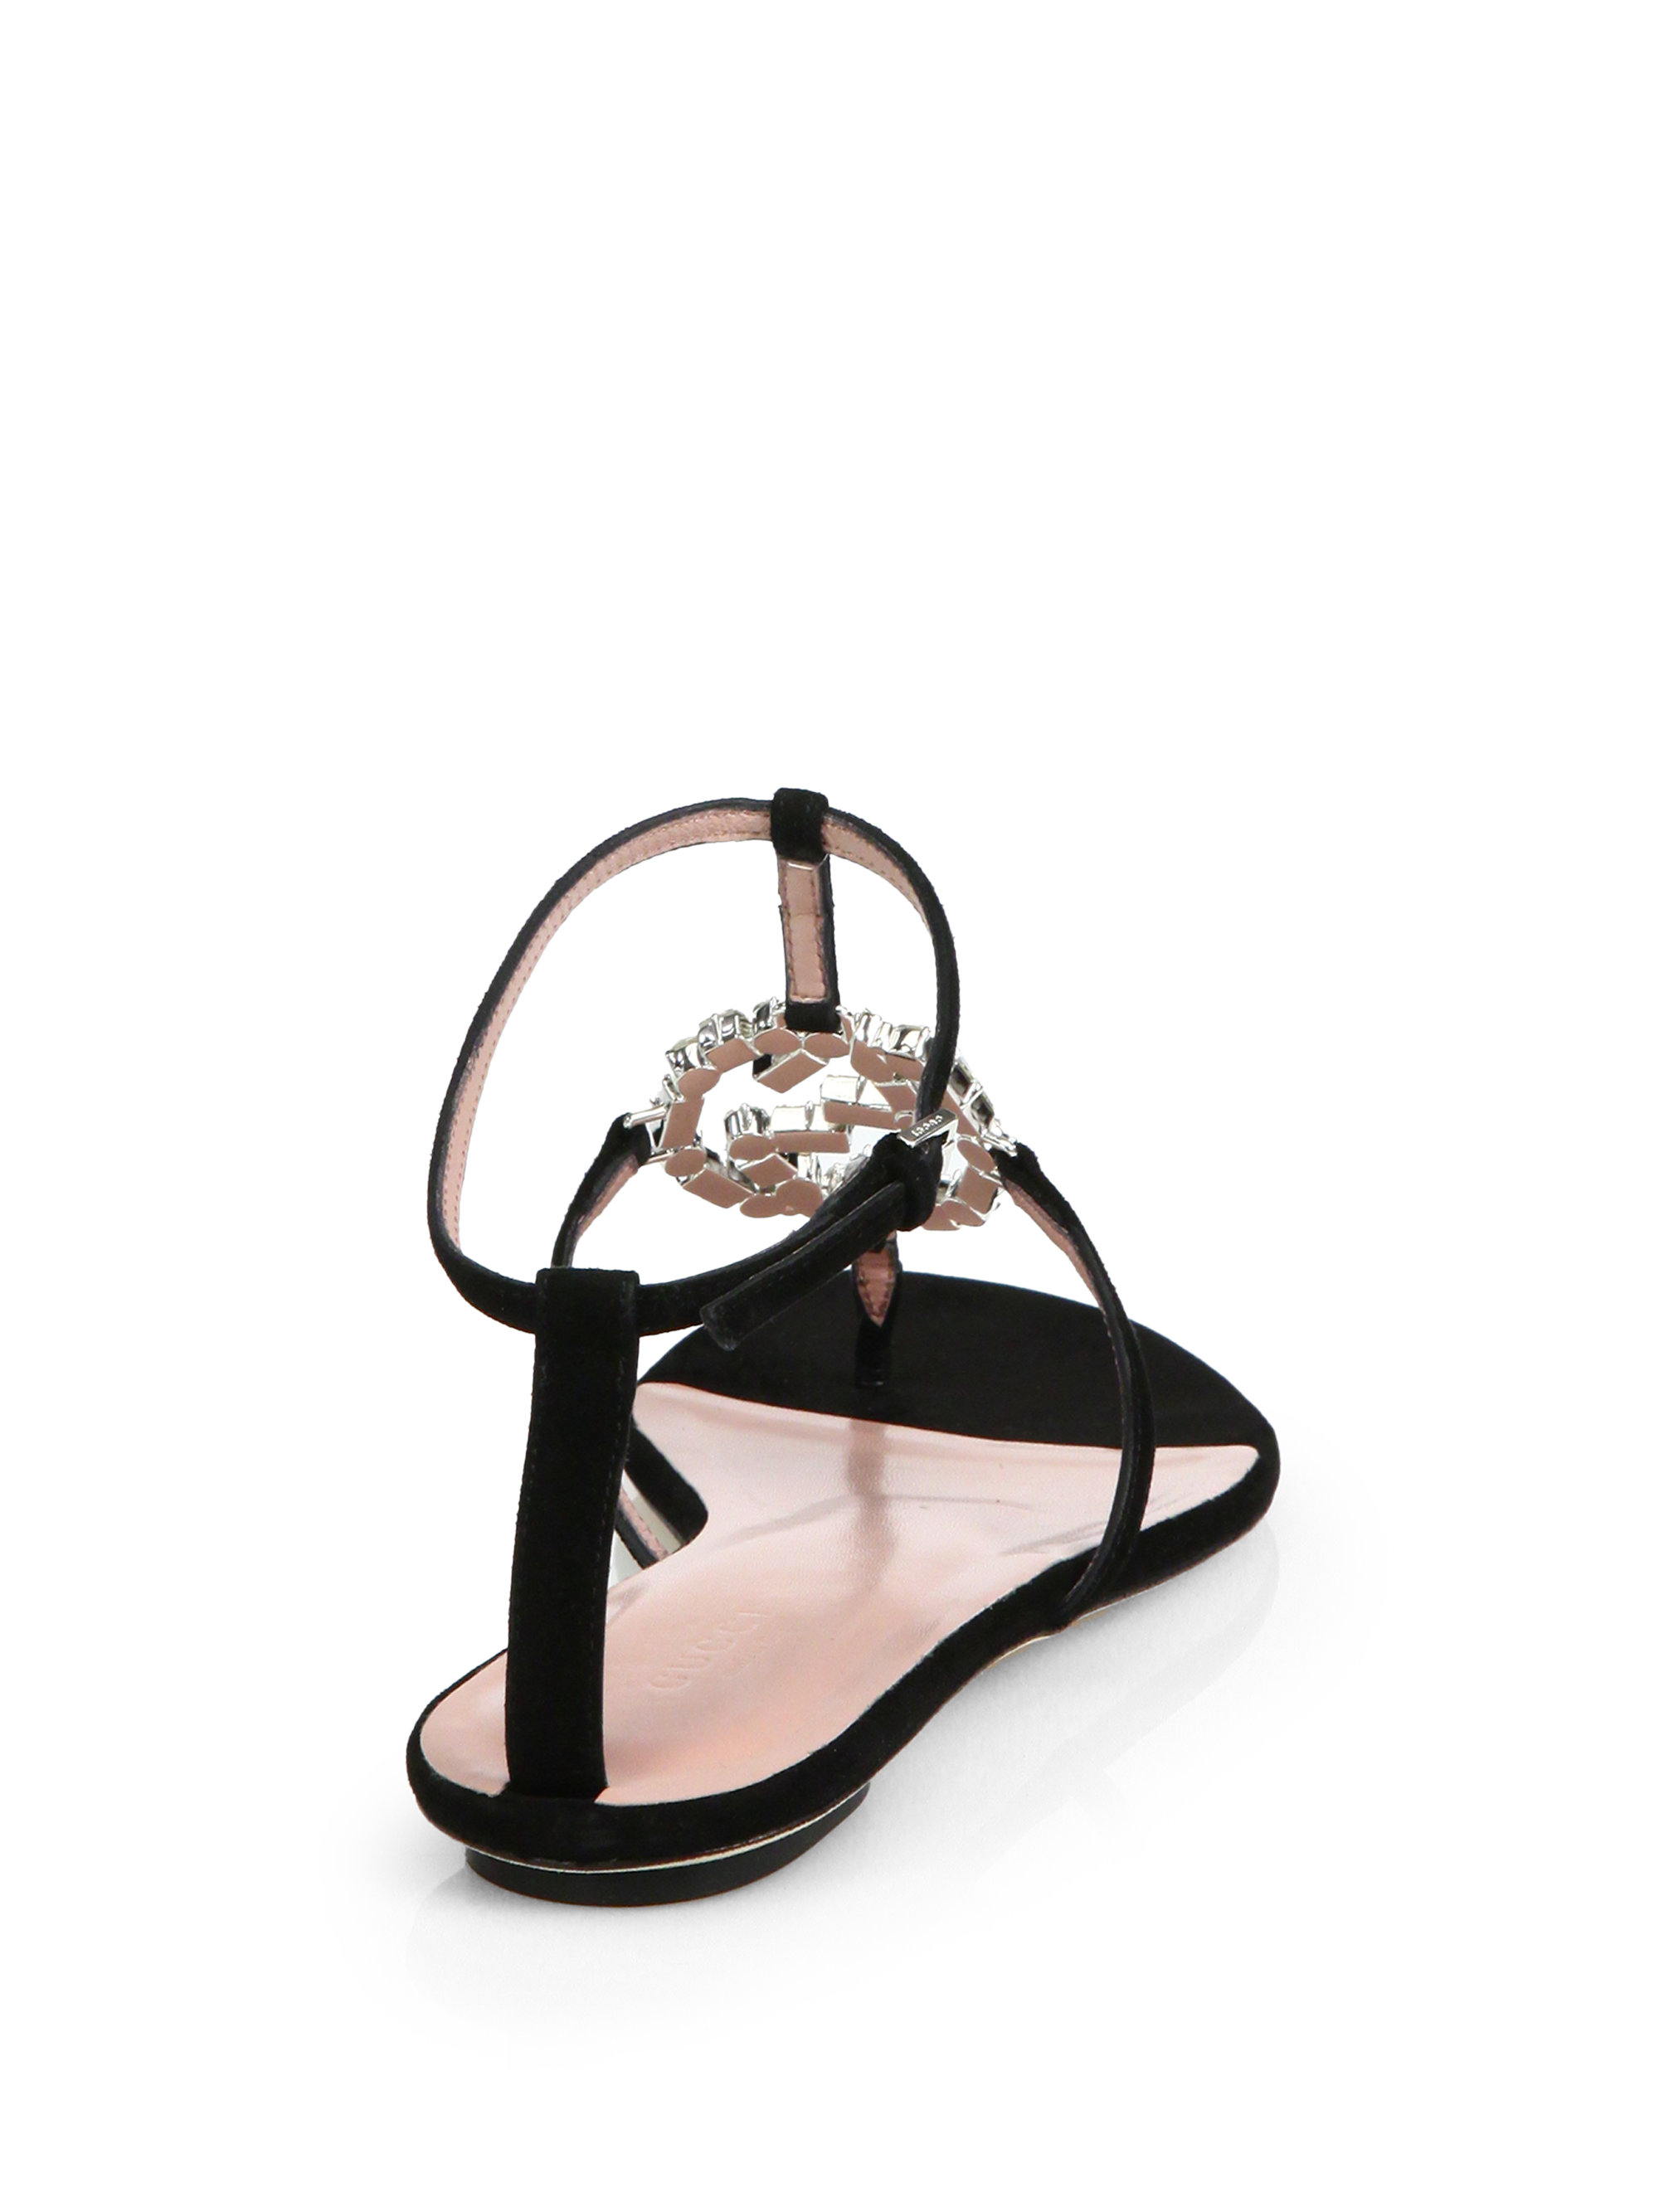 8239475ef11f Lyst - Gucci GG Crystal Leather and Suede Sandals in Black